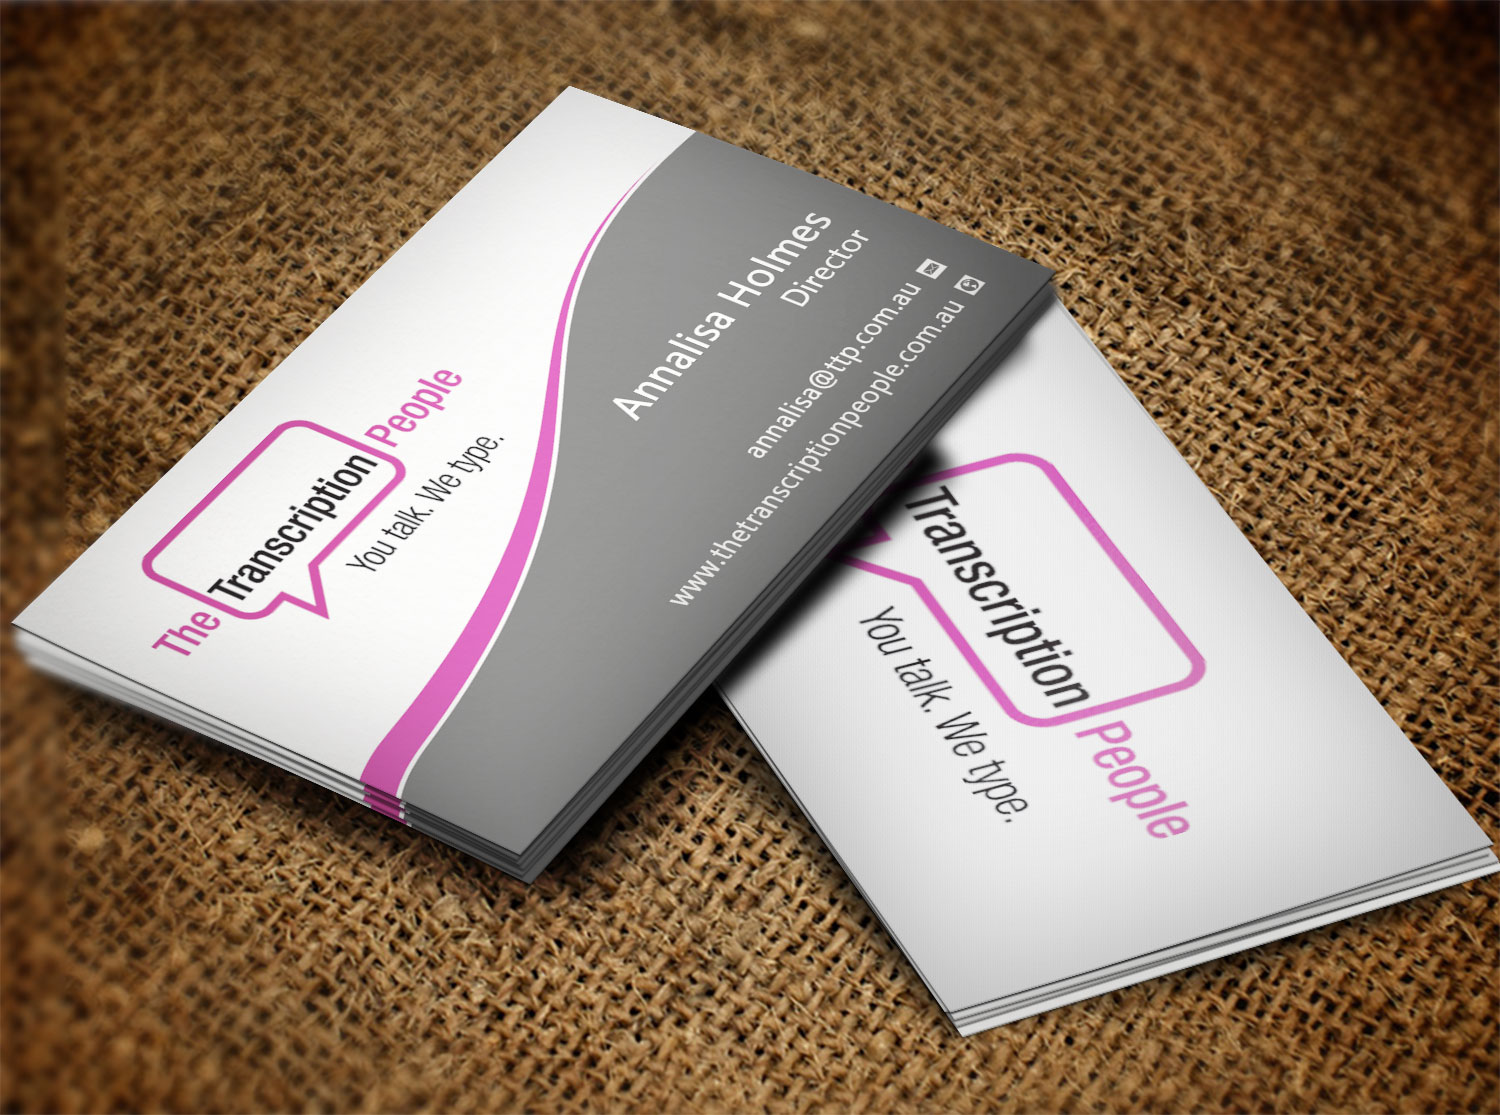 Business business card design for the transcription people pty ltd business business card design for the transcription people pty ltd in australia design 9784089 colourmoves